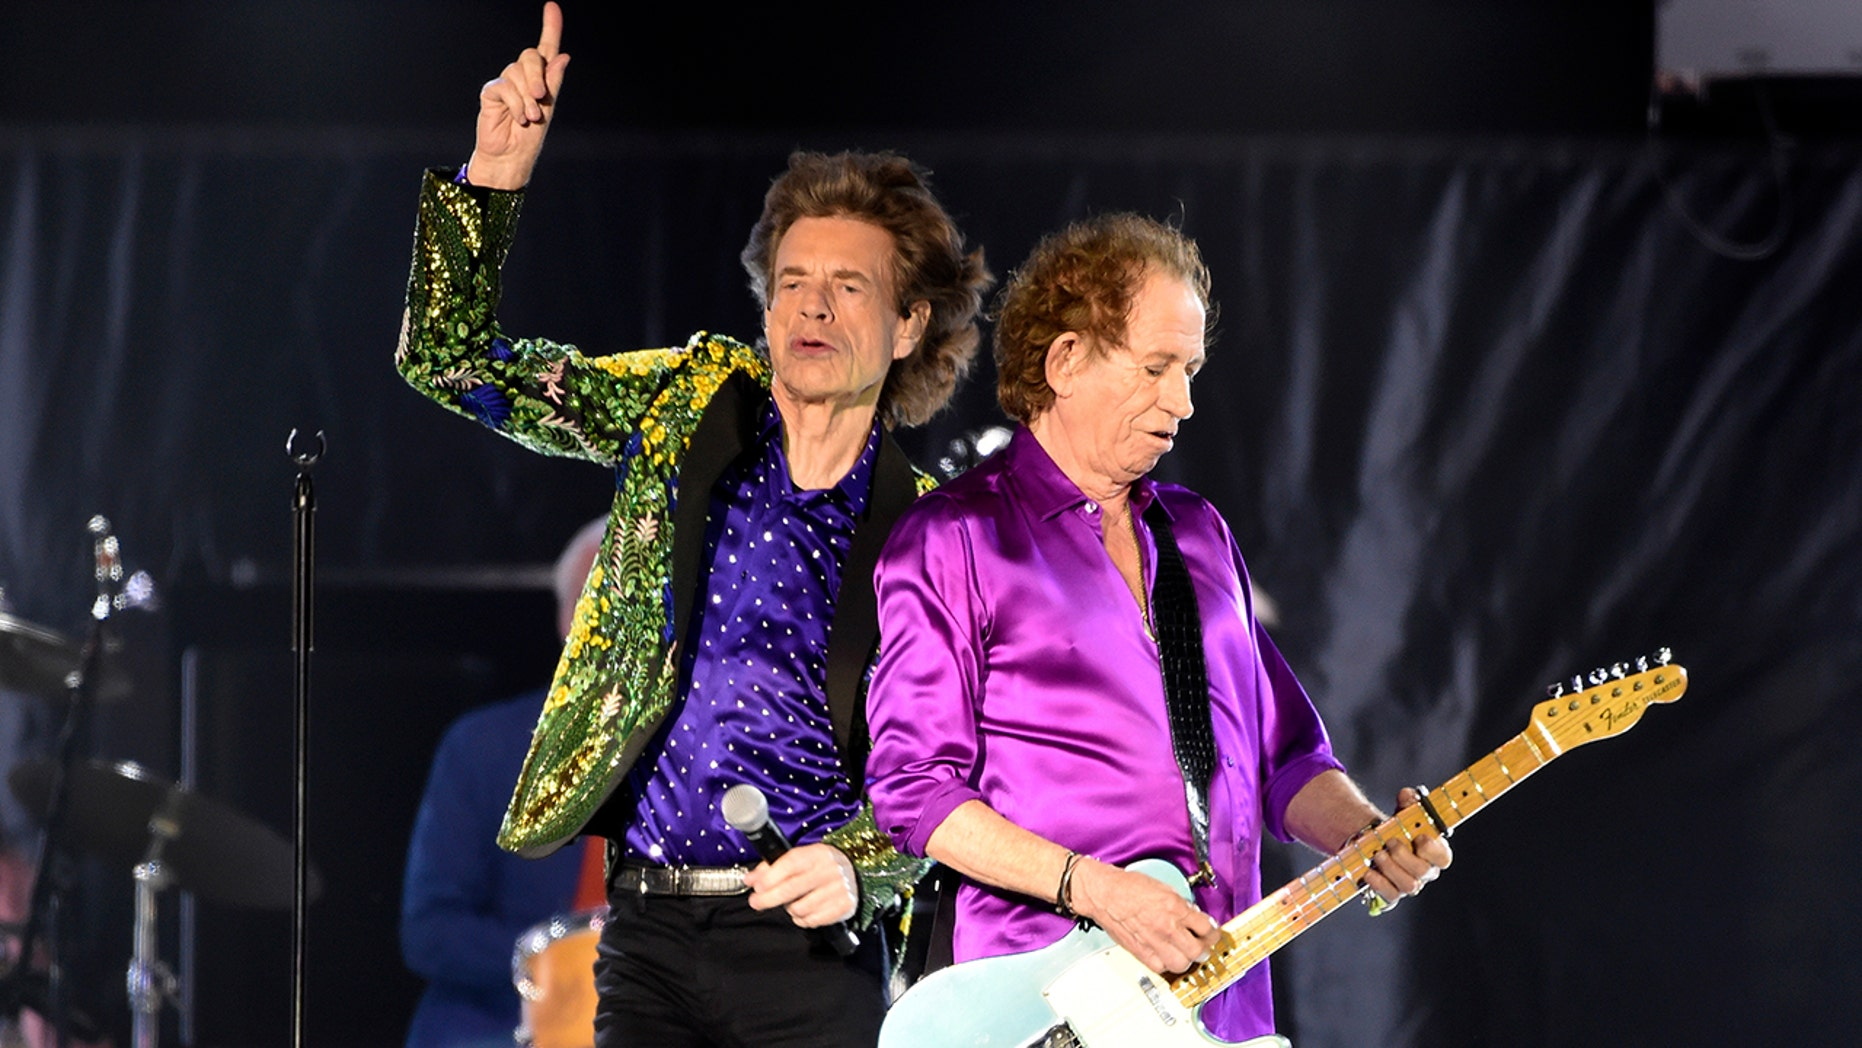 Westlake Legal Group AP19235201536083 Rolling Stones get name on little Martian rock that rolled fox-news/science/air-and-space/nasa fox-news/entertainment/music fnc/entertainment fnc Associated Press article Andrew Dalton 4c9a938c-f499-5274-a6c3-70c009ece341